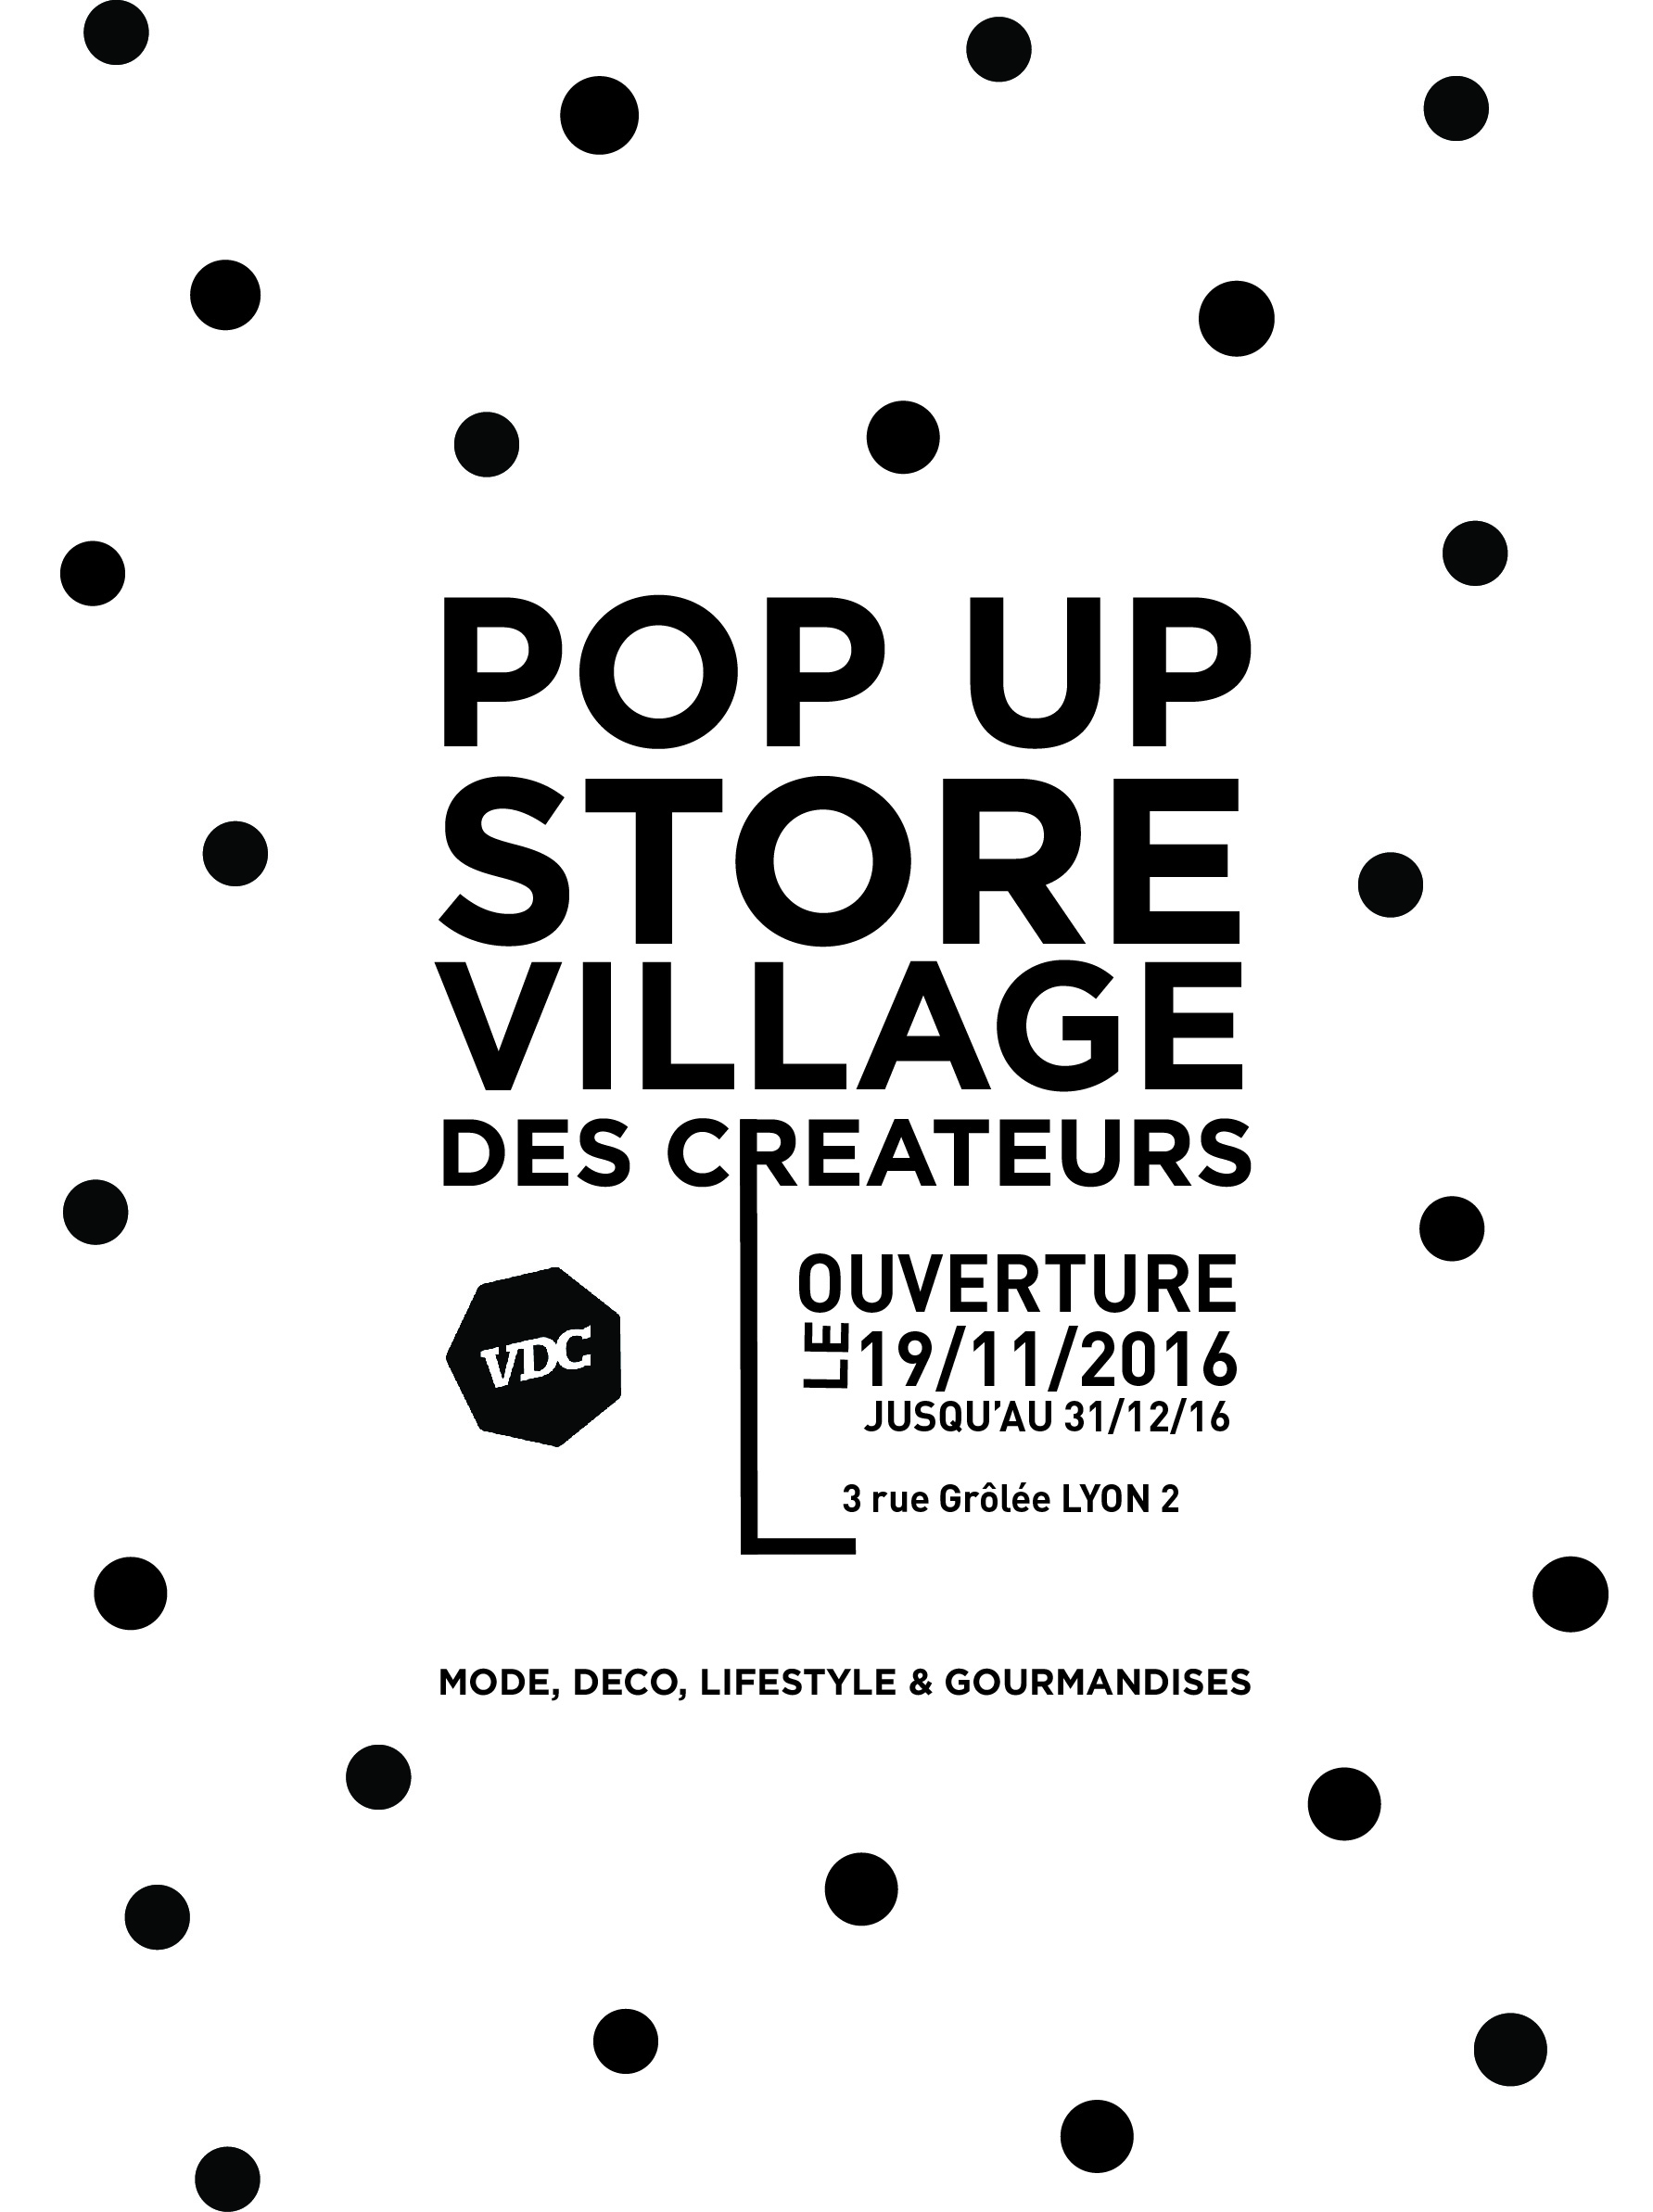 POP UP STORE Village des Créateurs